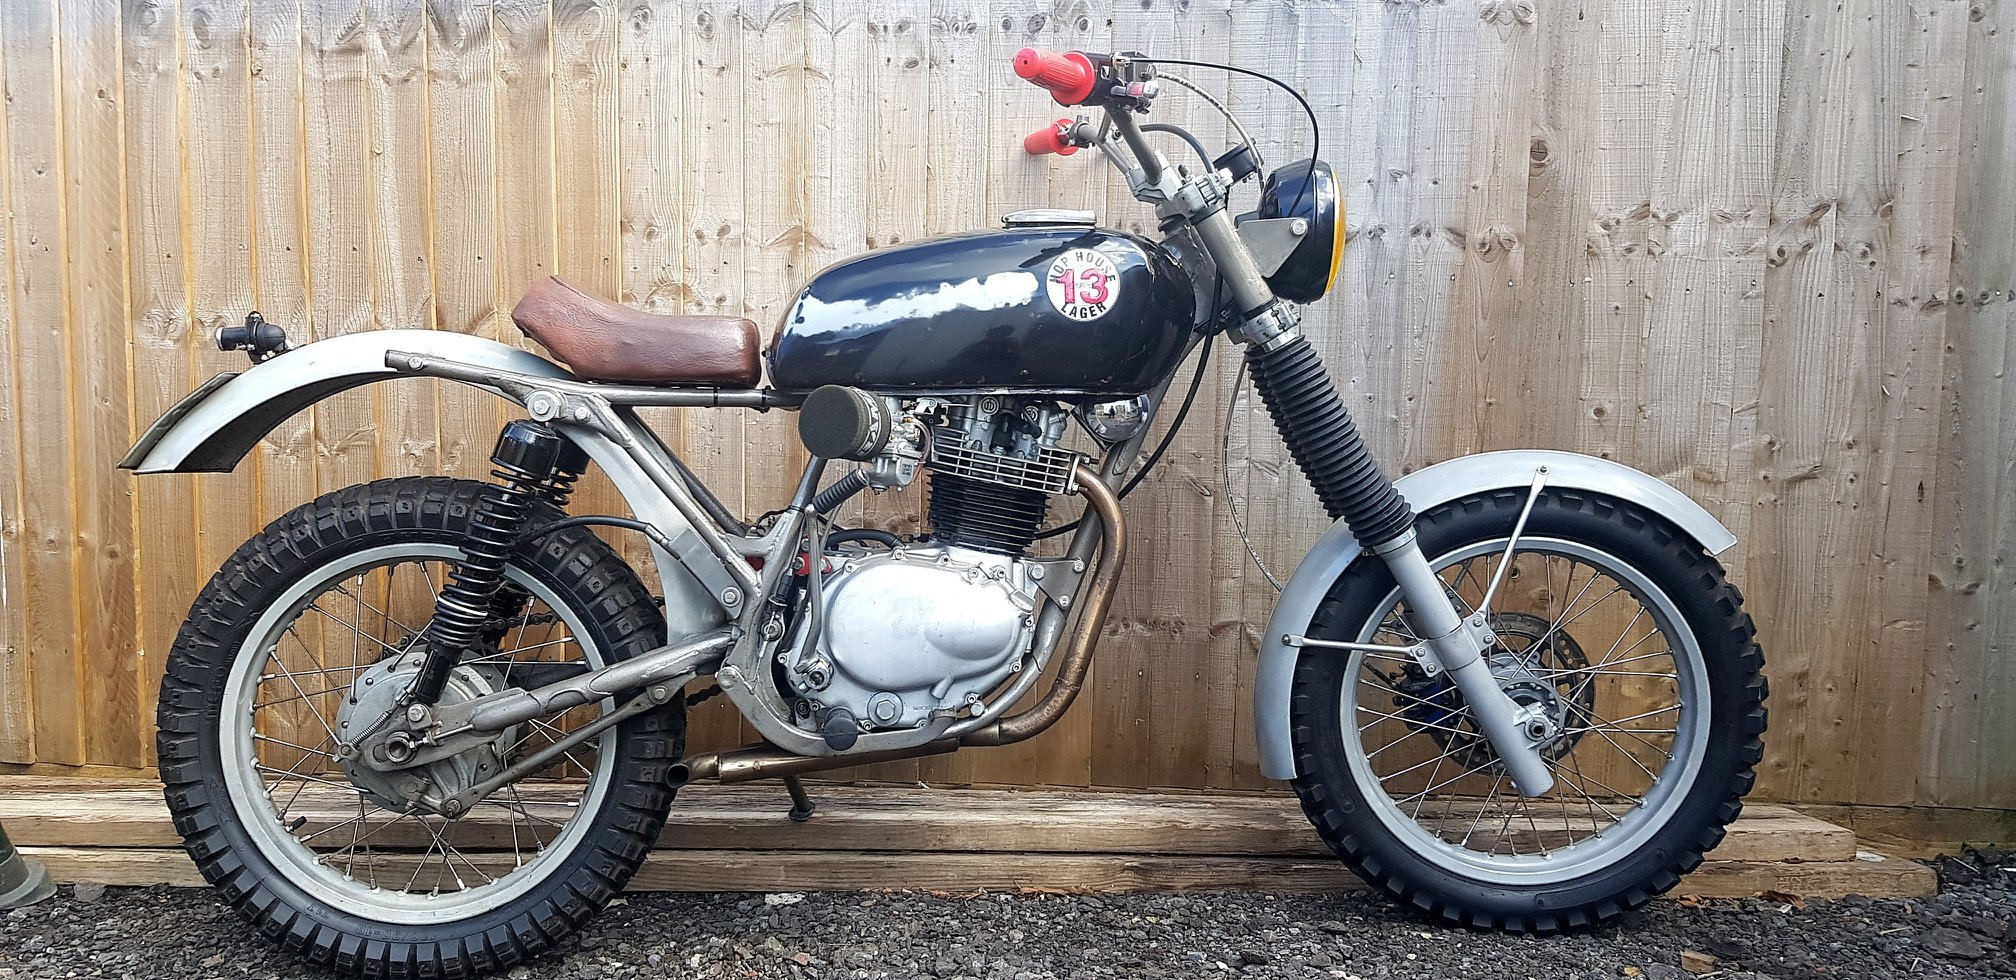 1977 XL250 Rat Rod with Motosport engine For Sale (picture 2 of 6)